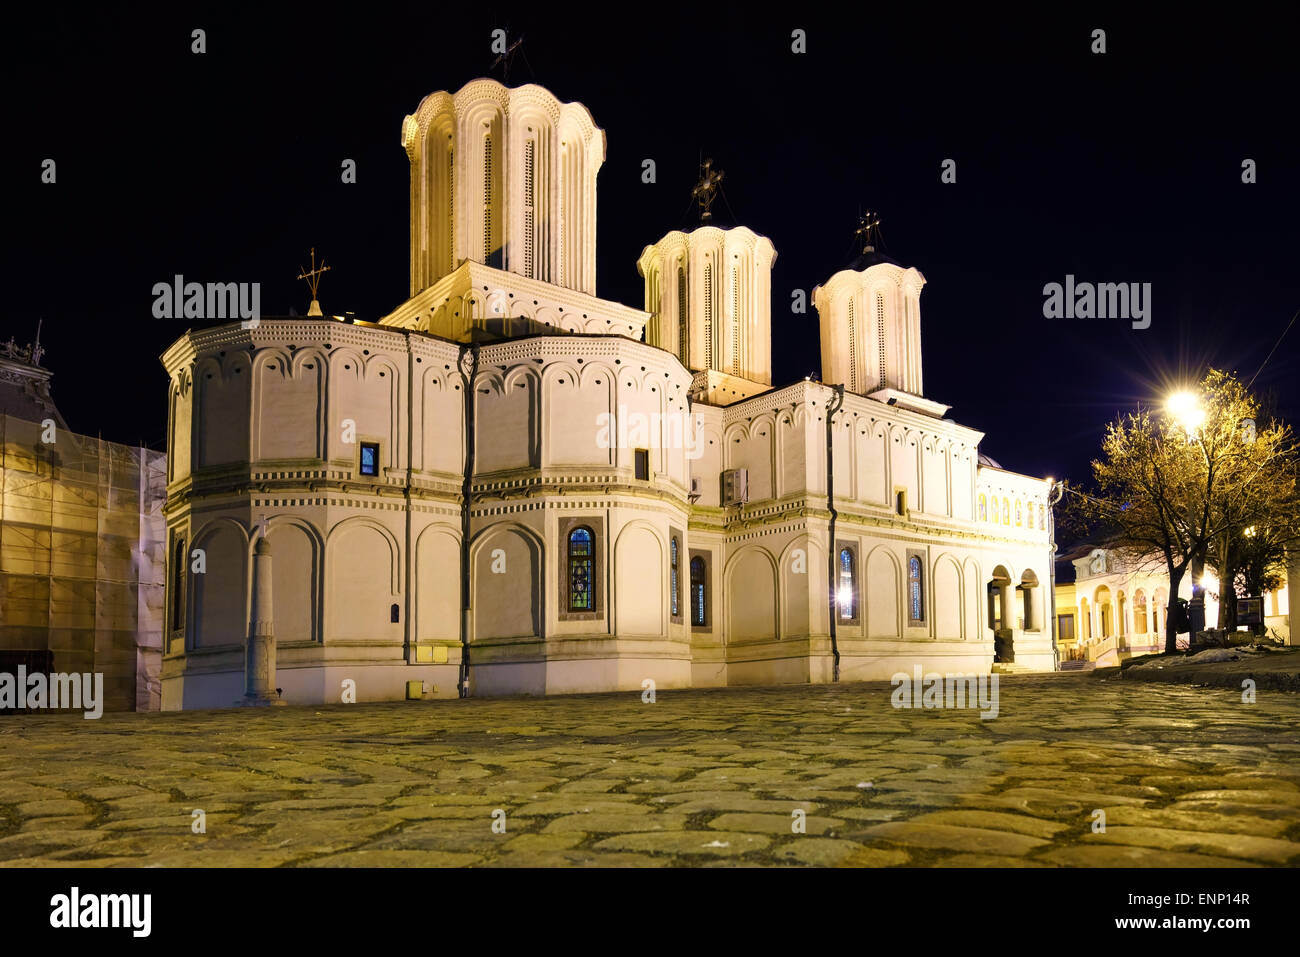 The Orthodox Patriarchal cathedral at night in Bucharest, Romania. - Stock Image